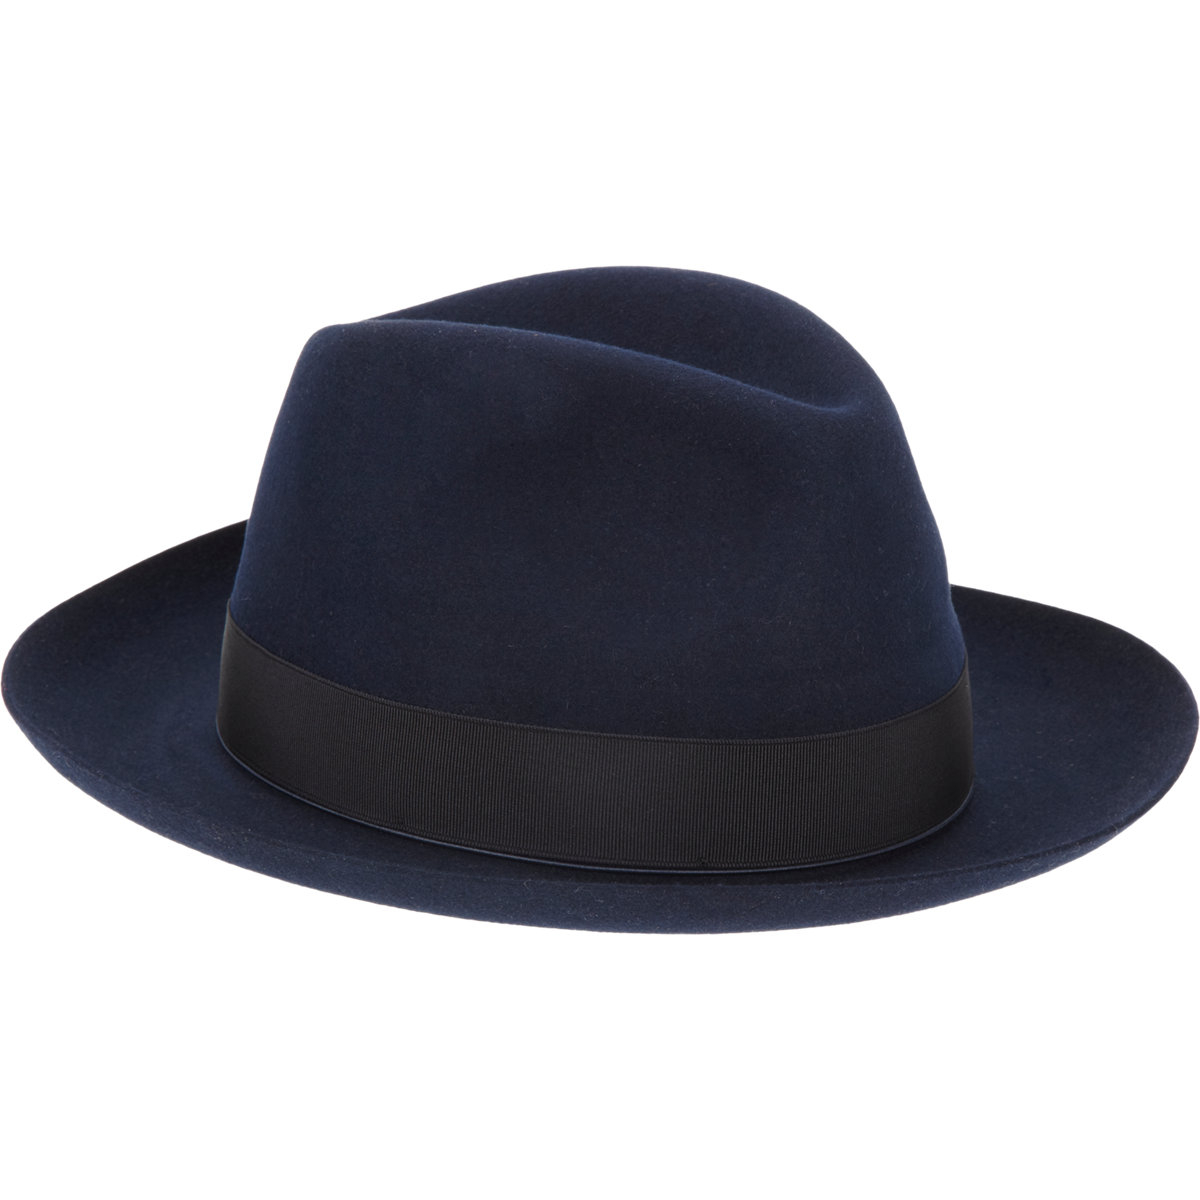 Lyst - Borsalino Rabbit Fur Felt Fedora in Blue for Men 14d5839d672